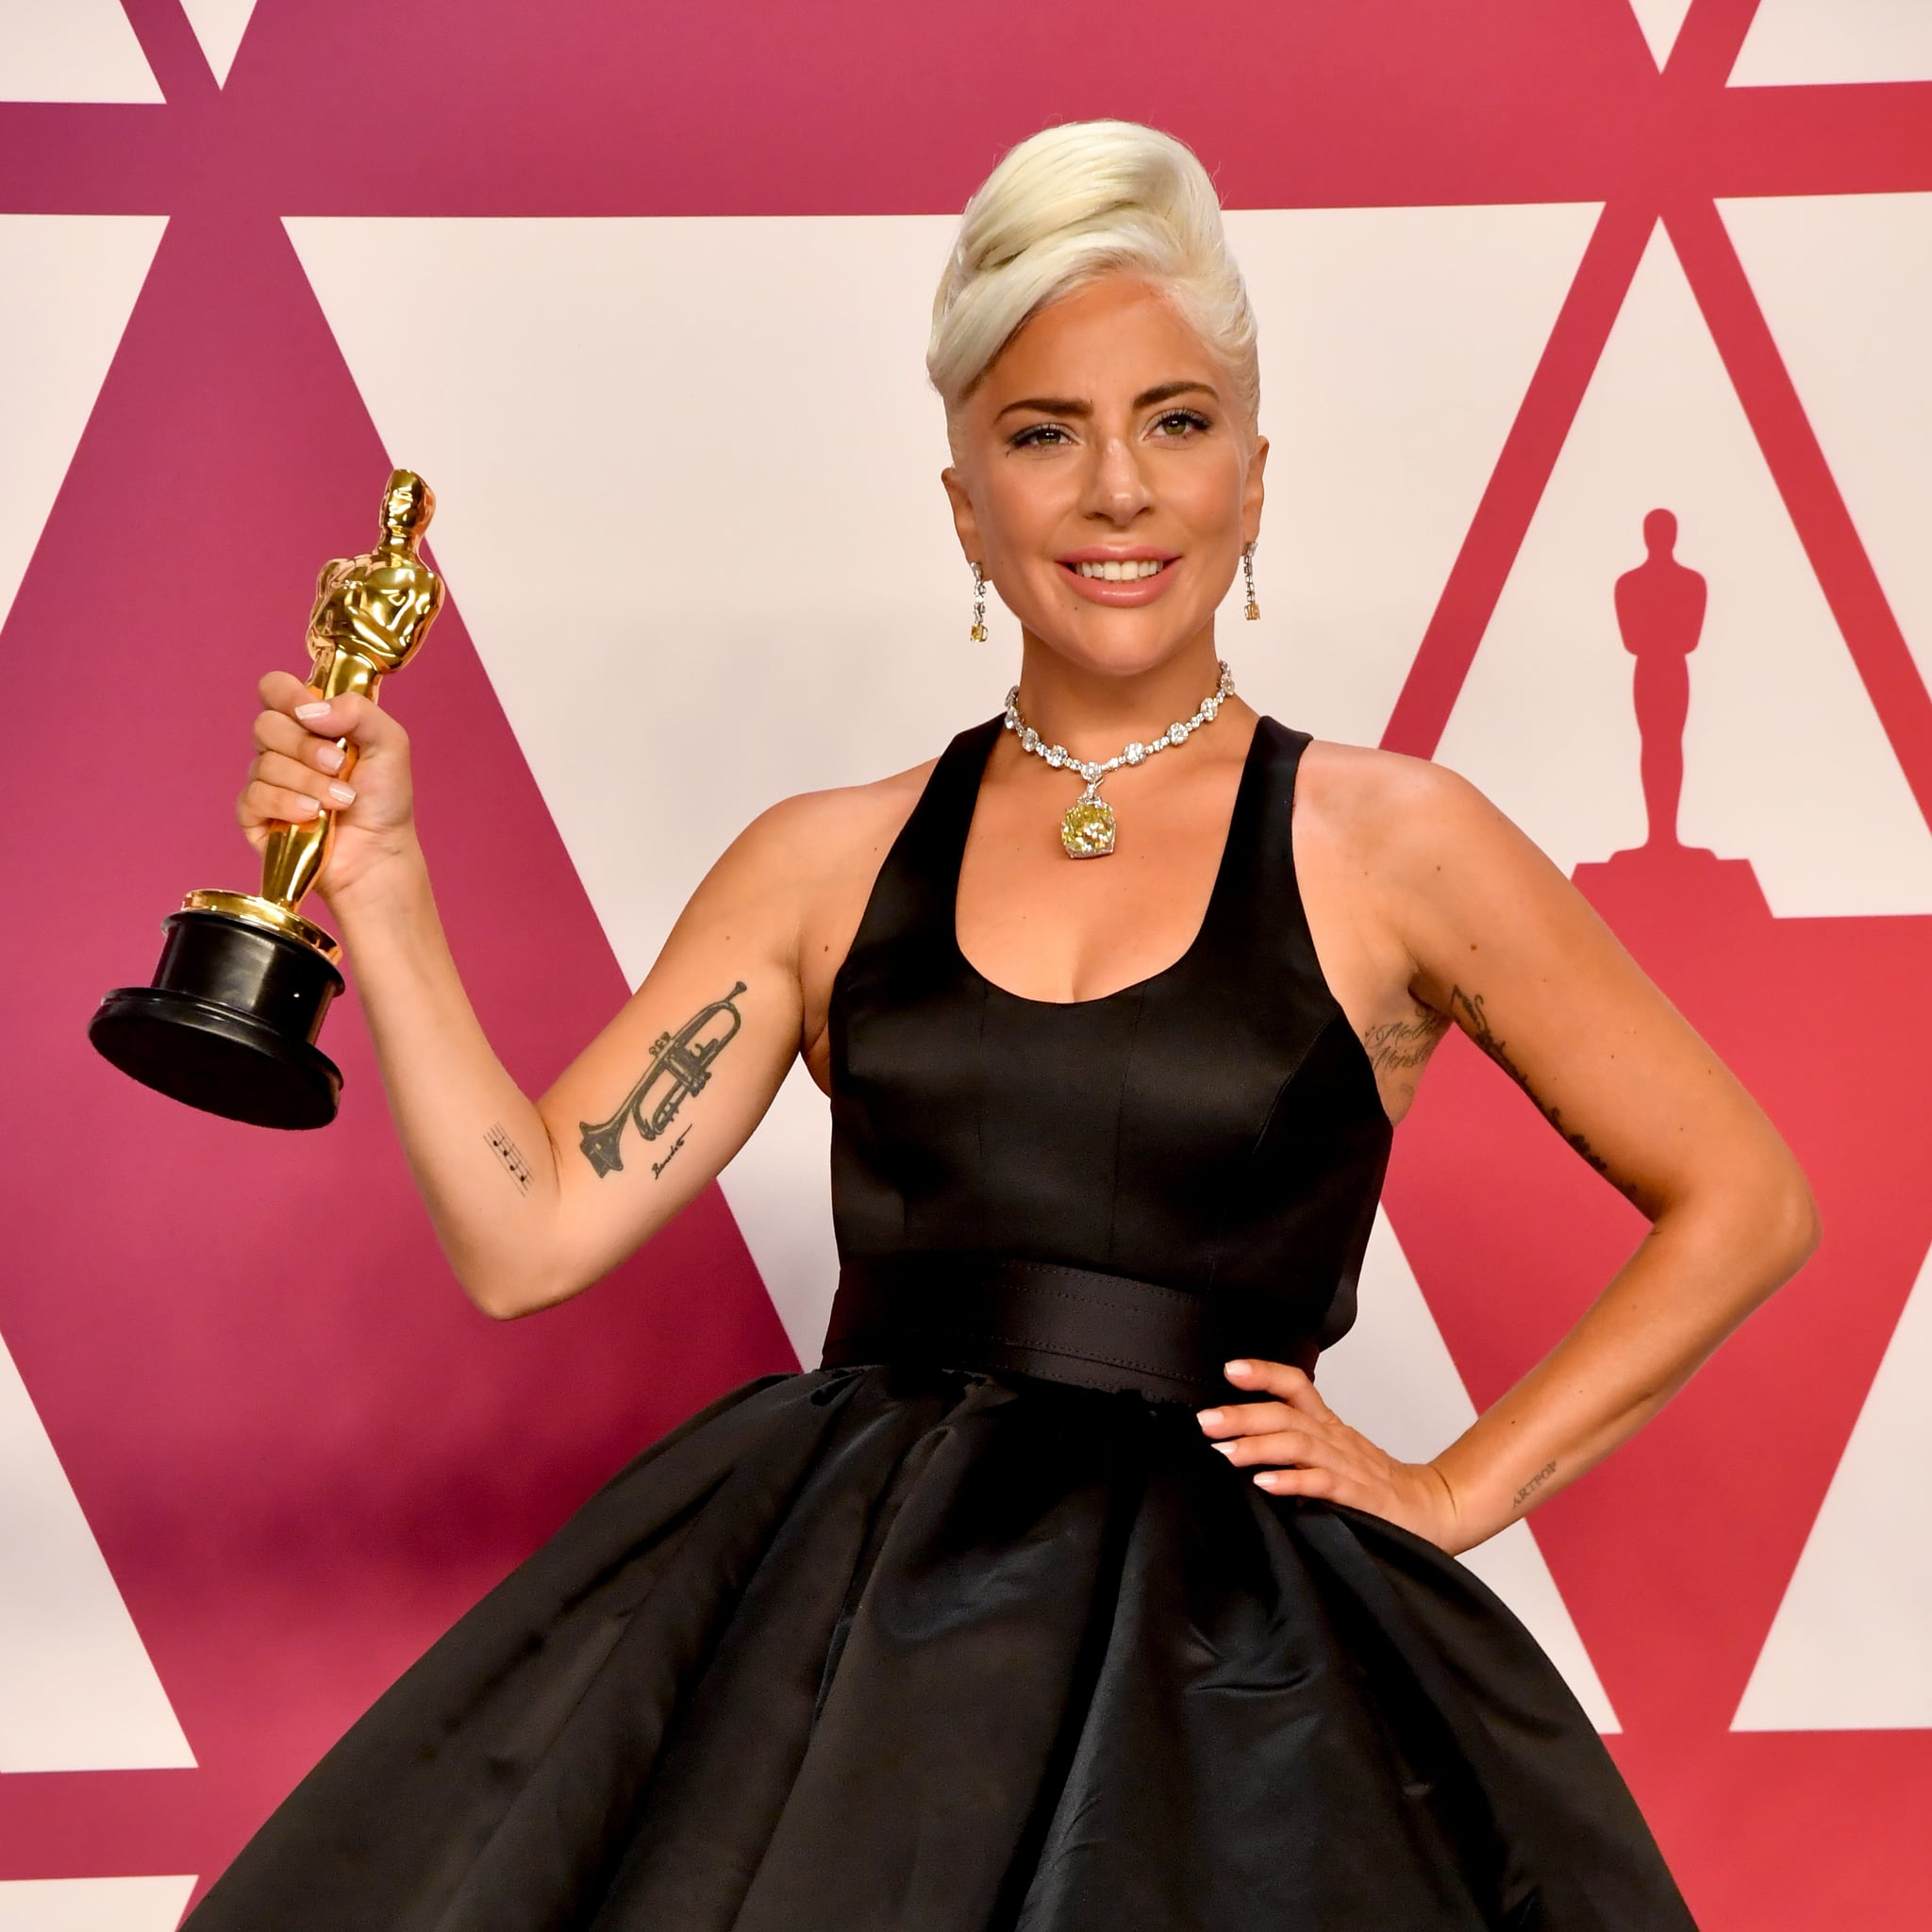 HOLLYWOOD, CALIFORNIA:  (EDITORS NOTE: Retransmission with alternate crop.) Lady Gaga, winner of Best Original Song for 'Shallow' from 'A Star is Born' poses in the press room during the 91st Annual Academy Awards at Hollywood and Highland on February 24, 2019 in Hollywood, California.  (Photo by Jeff Kravitz/FilmMagic)